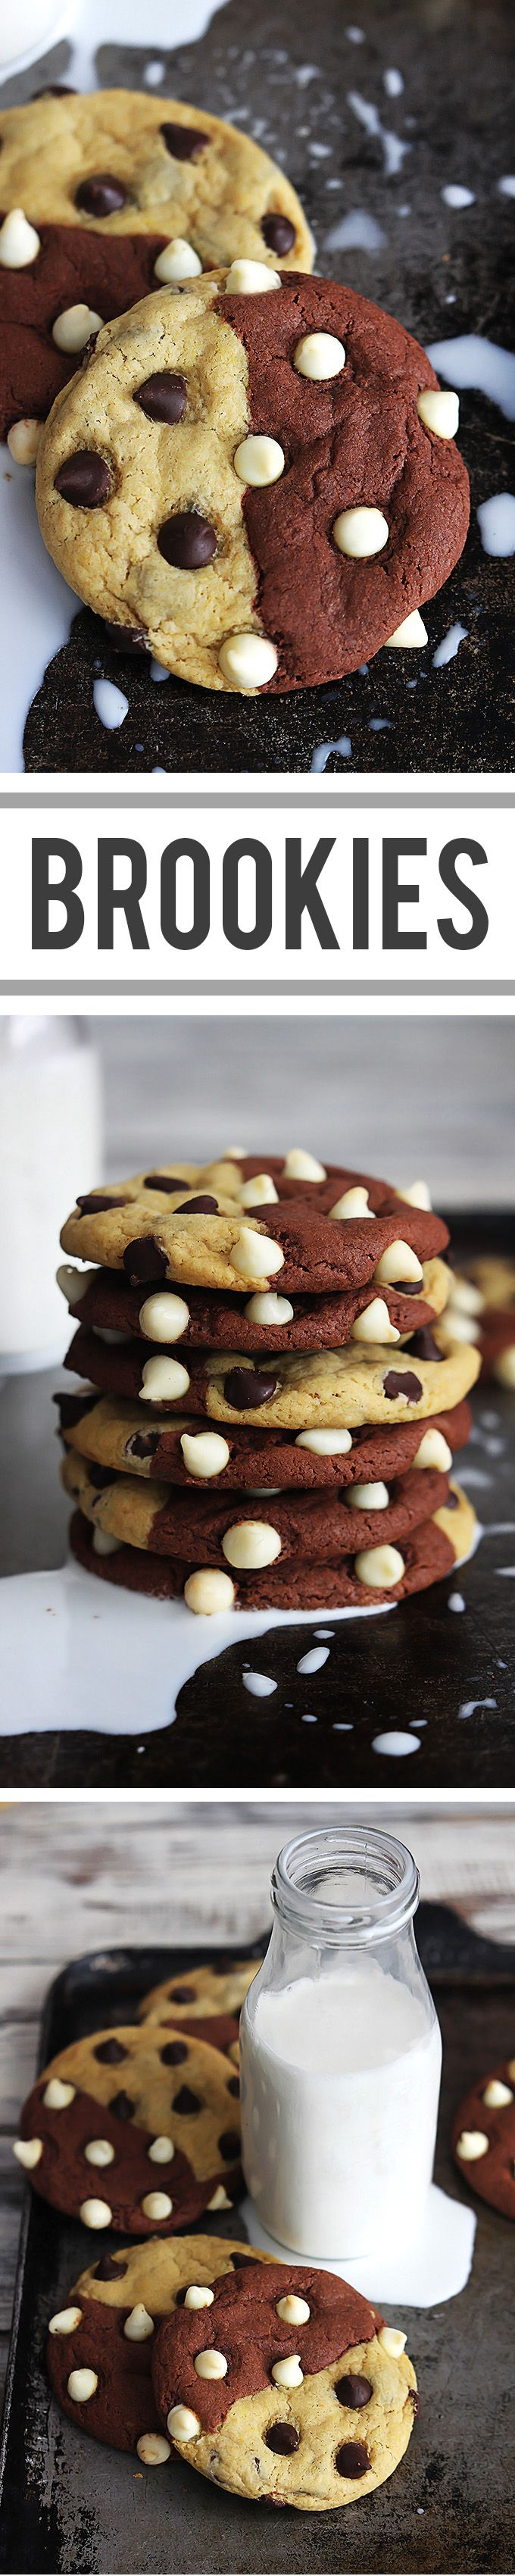 Combining brownies and chocolate chip cookies gives you soft and chewy Brookies